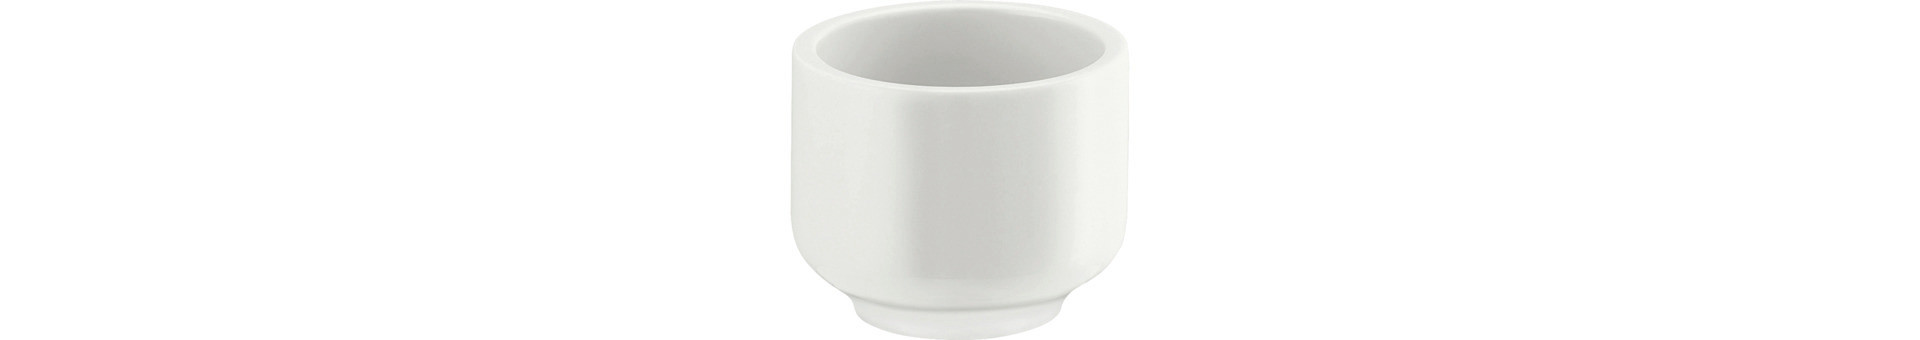 Shiro, Bowl ø 64 mm / 0,09 l